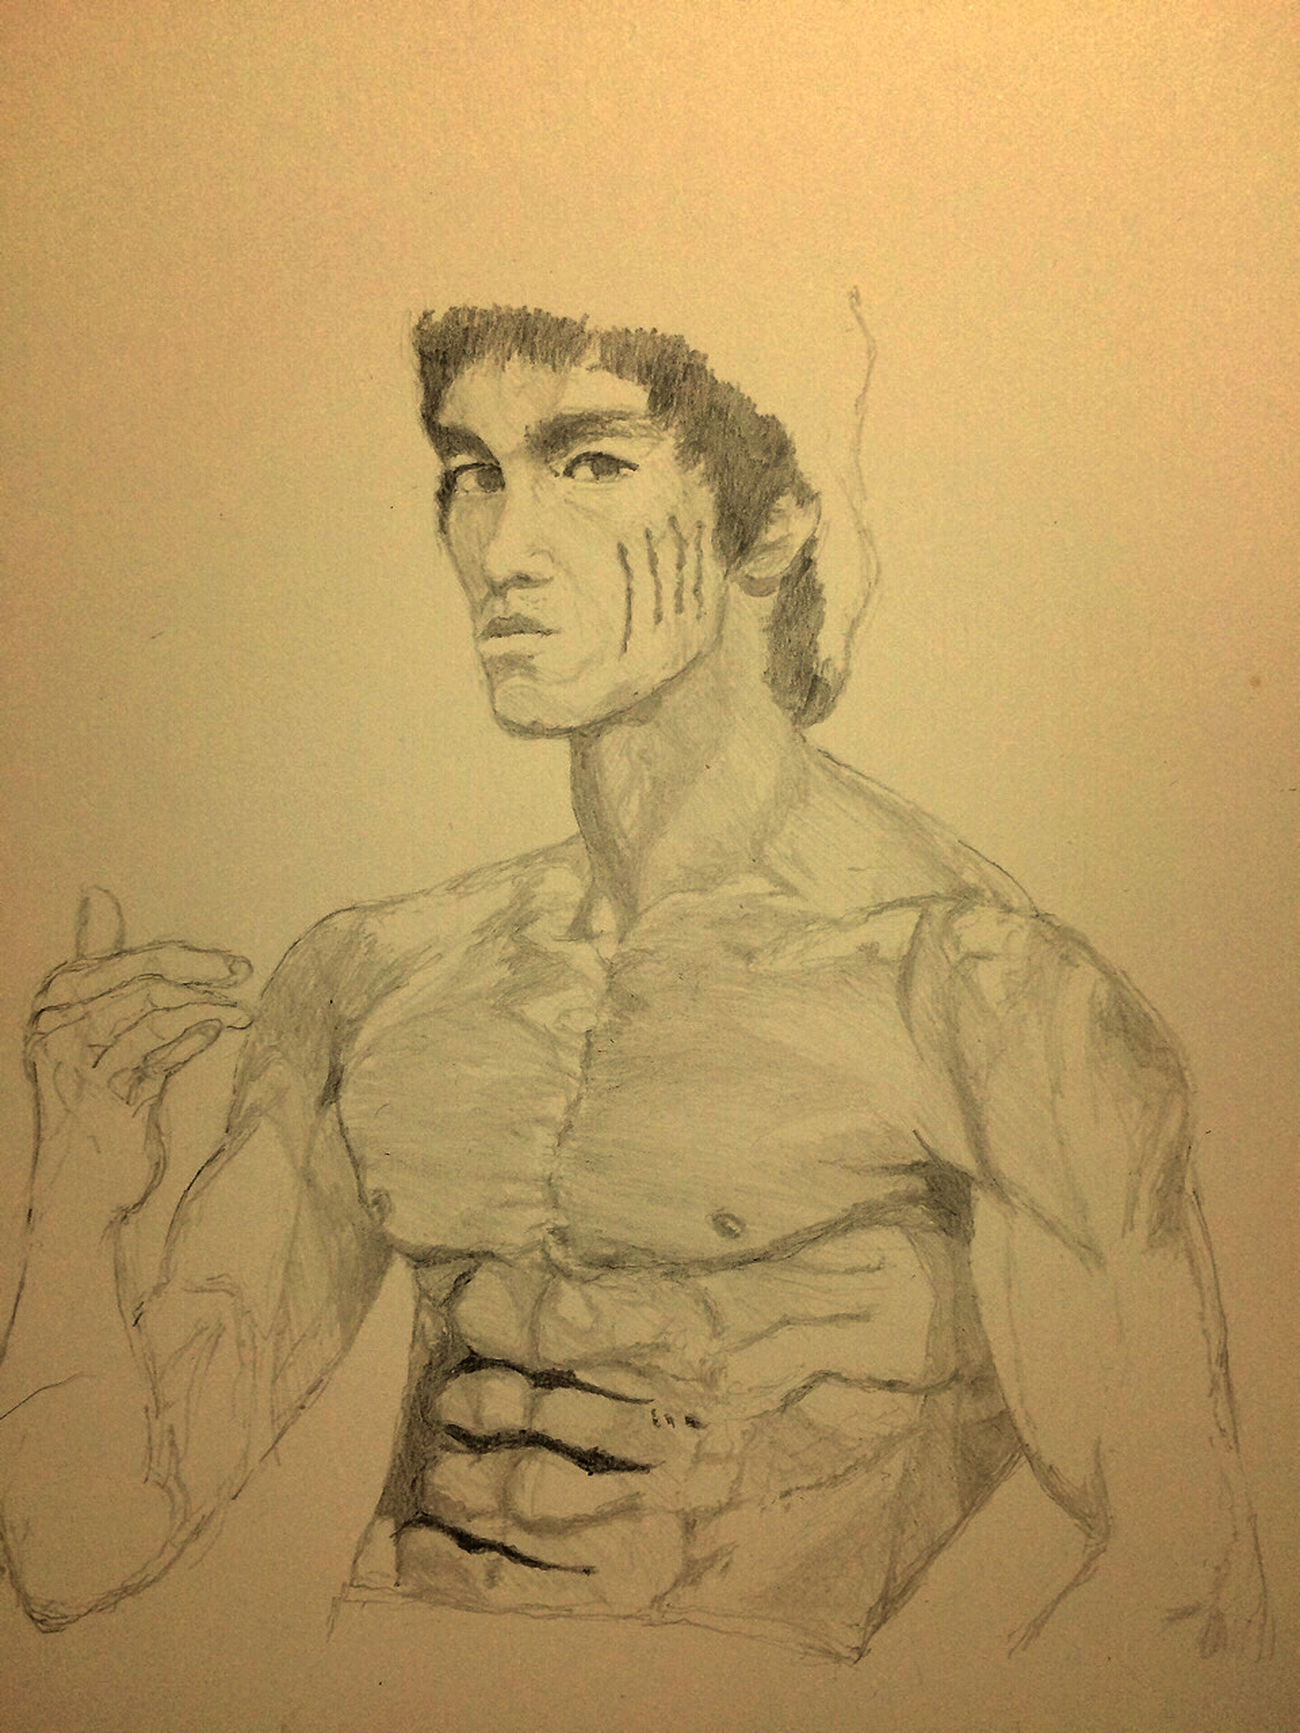 Brucelee Bruce Lee 李小龙 ブルースリー MyDrawing Art, Drawing, Creativity Hello World ArtWork Drawing